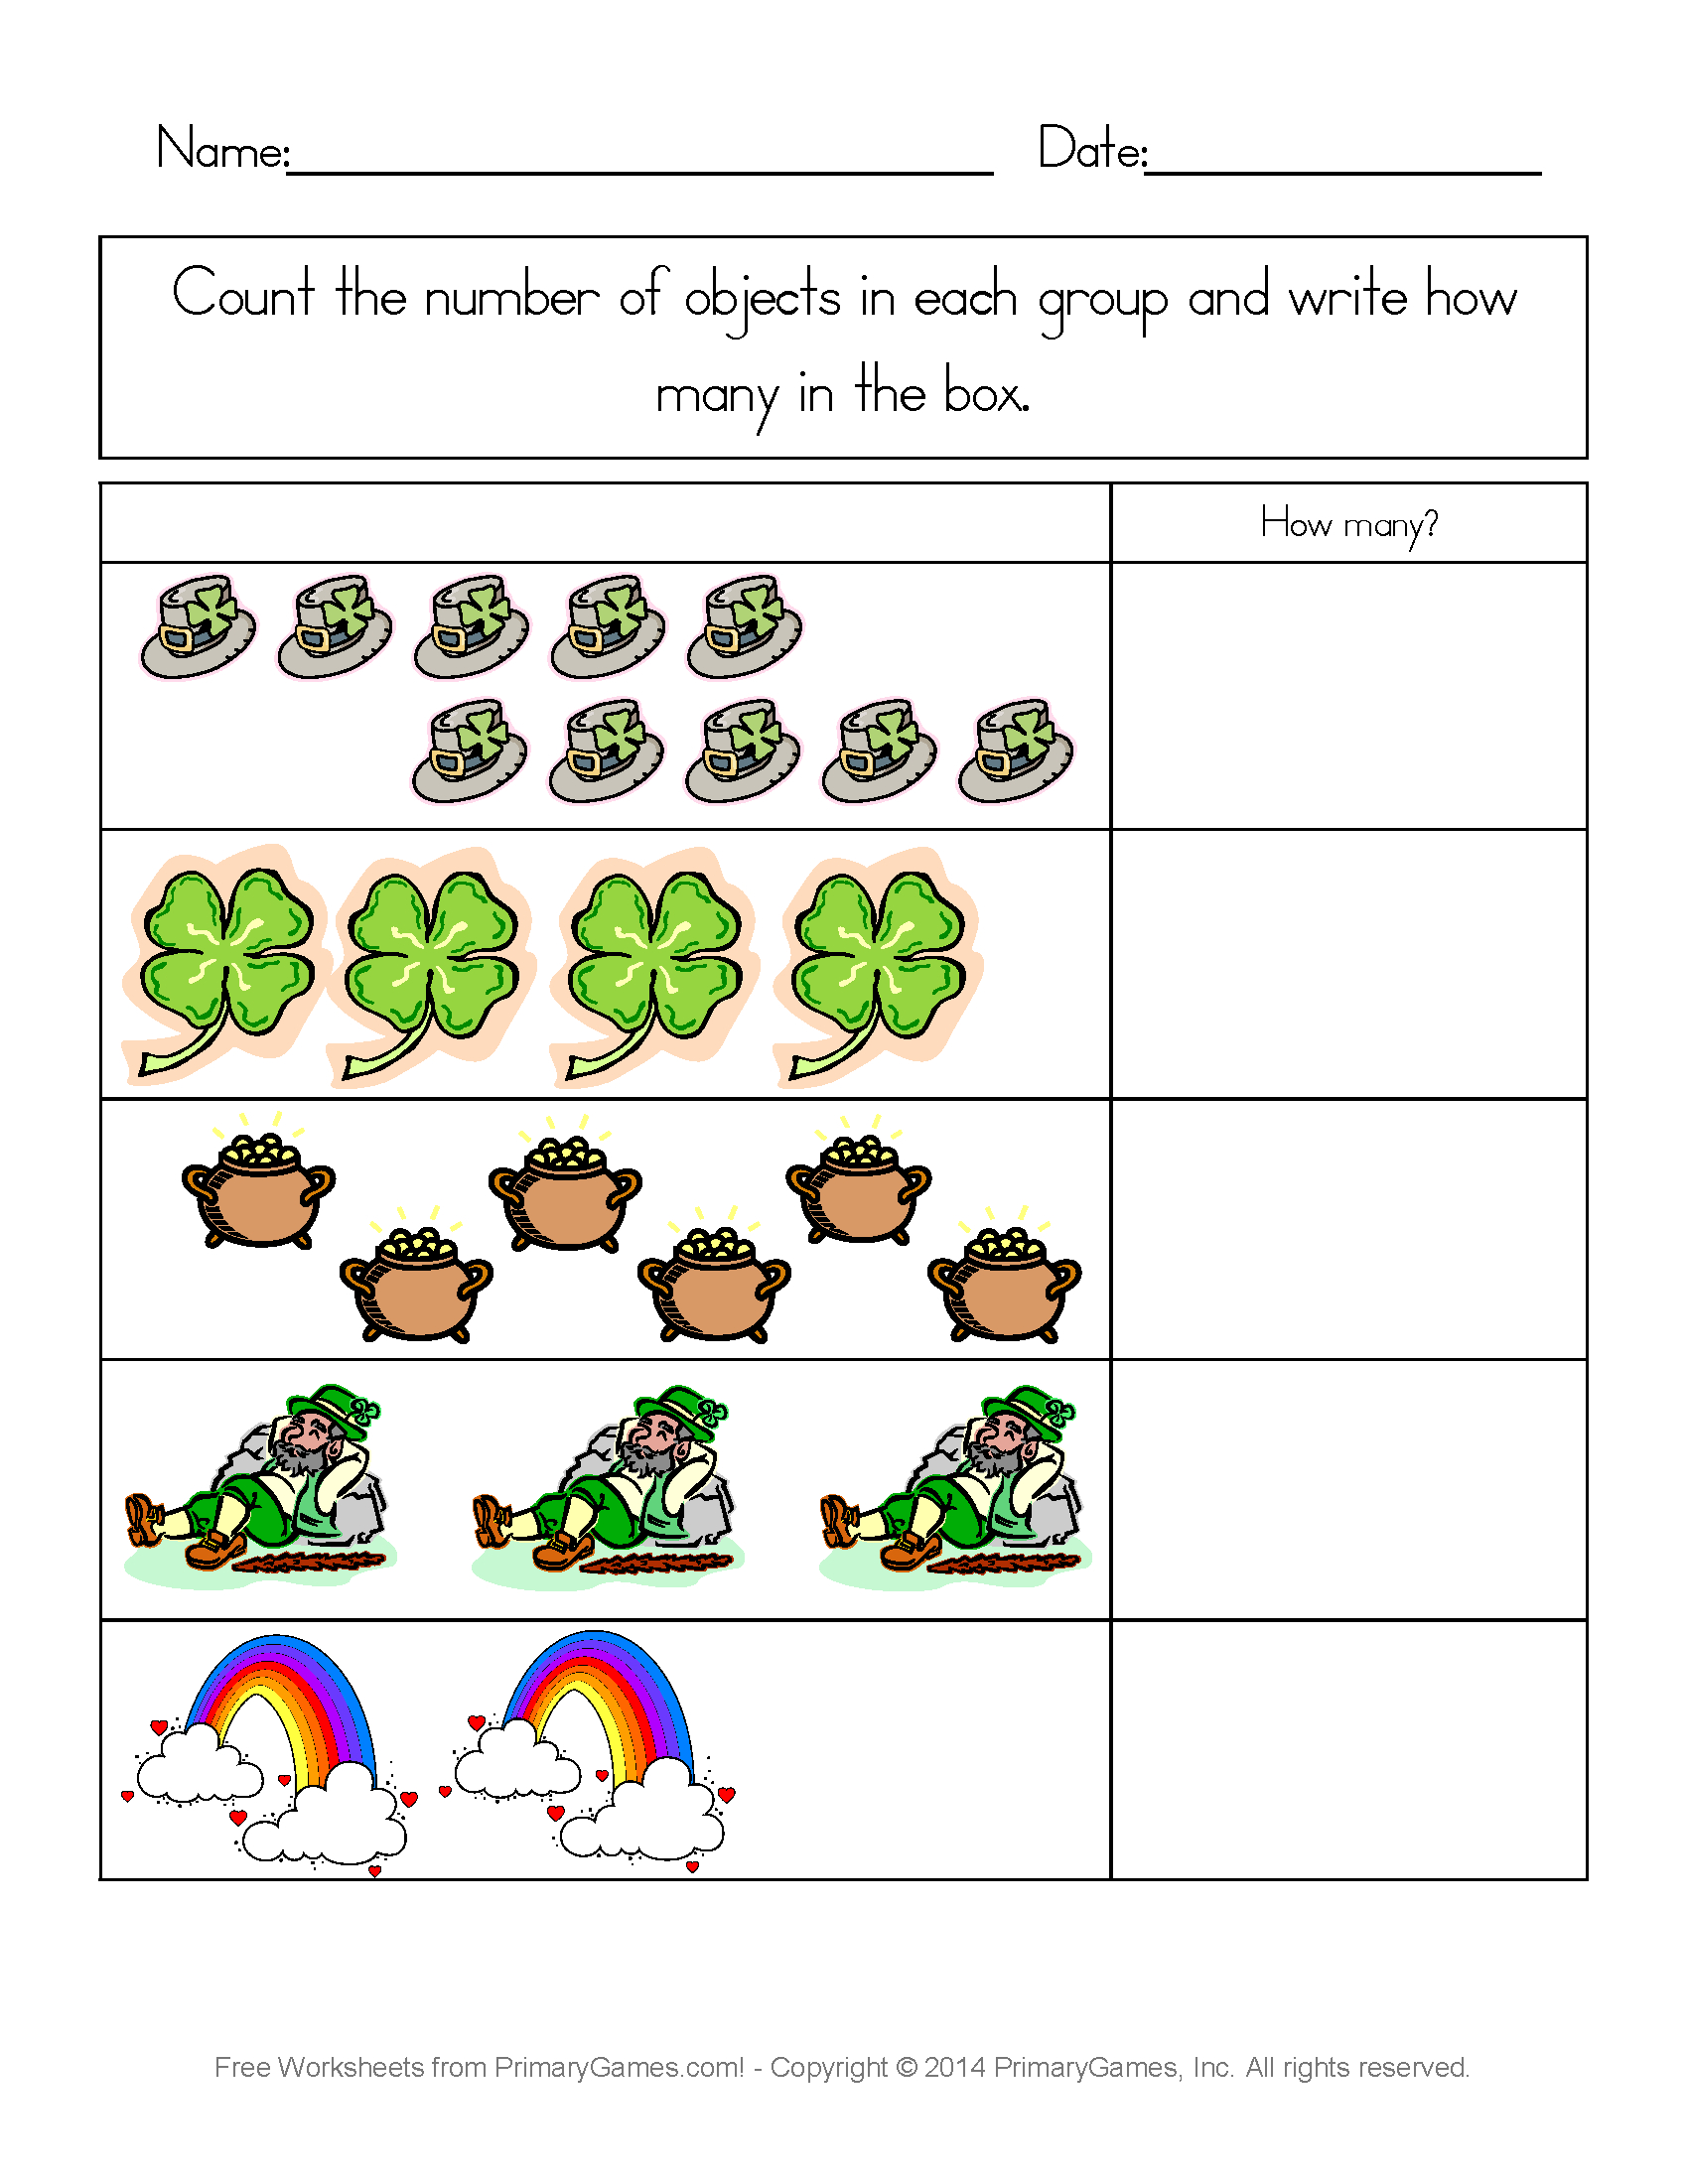 St. Patrick's Day Worksheets: St. Patrick's Day Counting Practice - Free Printable St Patrick Day Worksheets